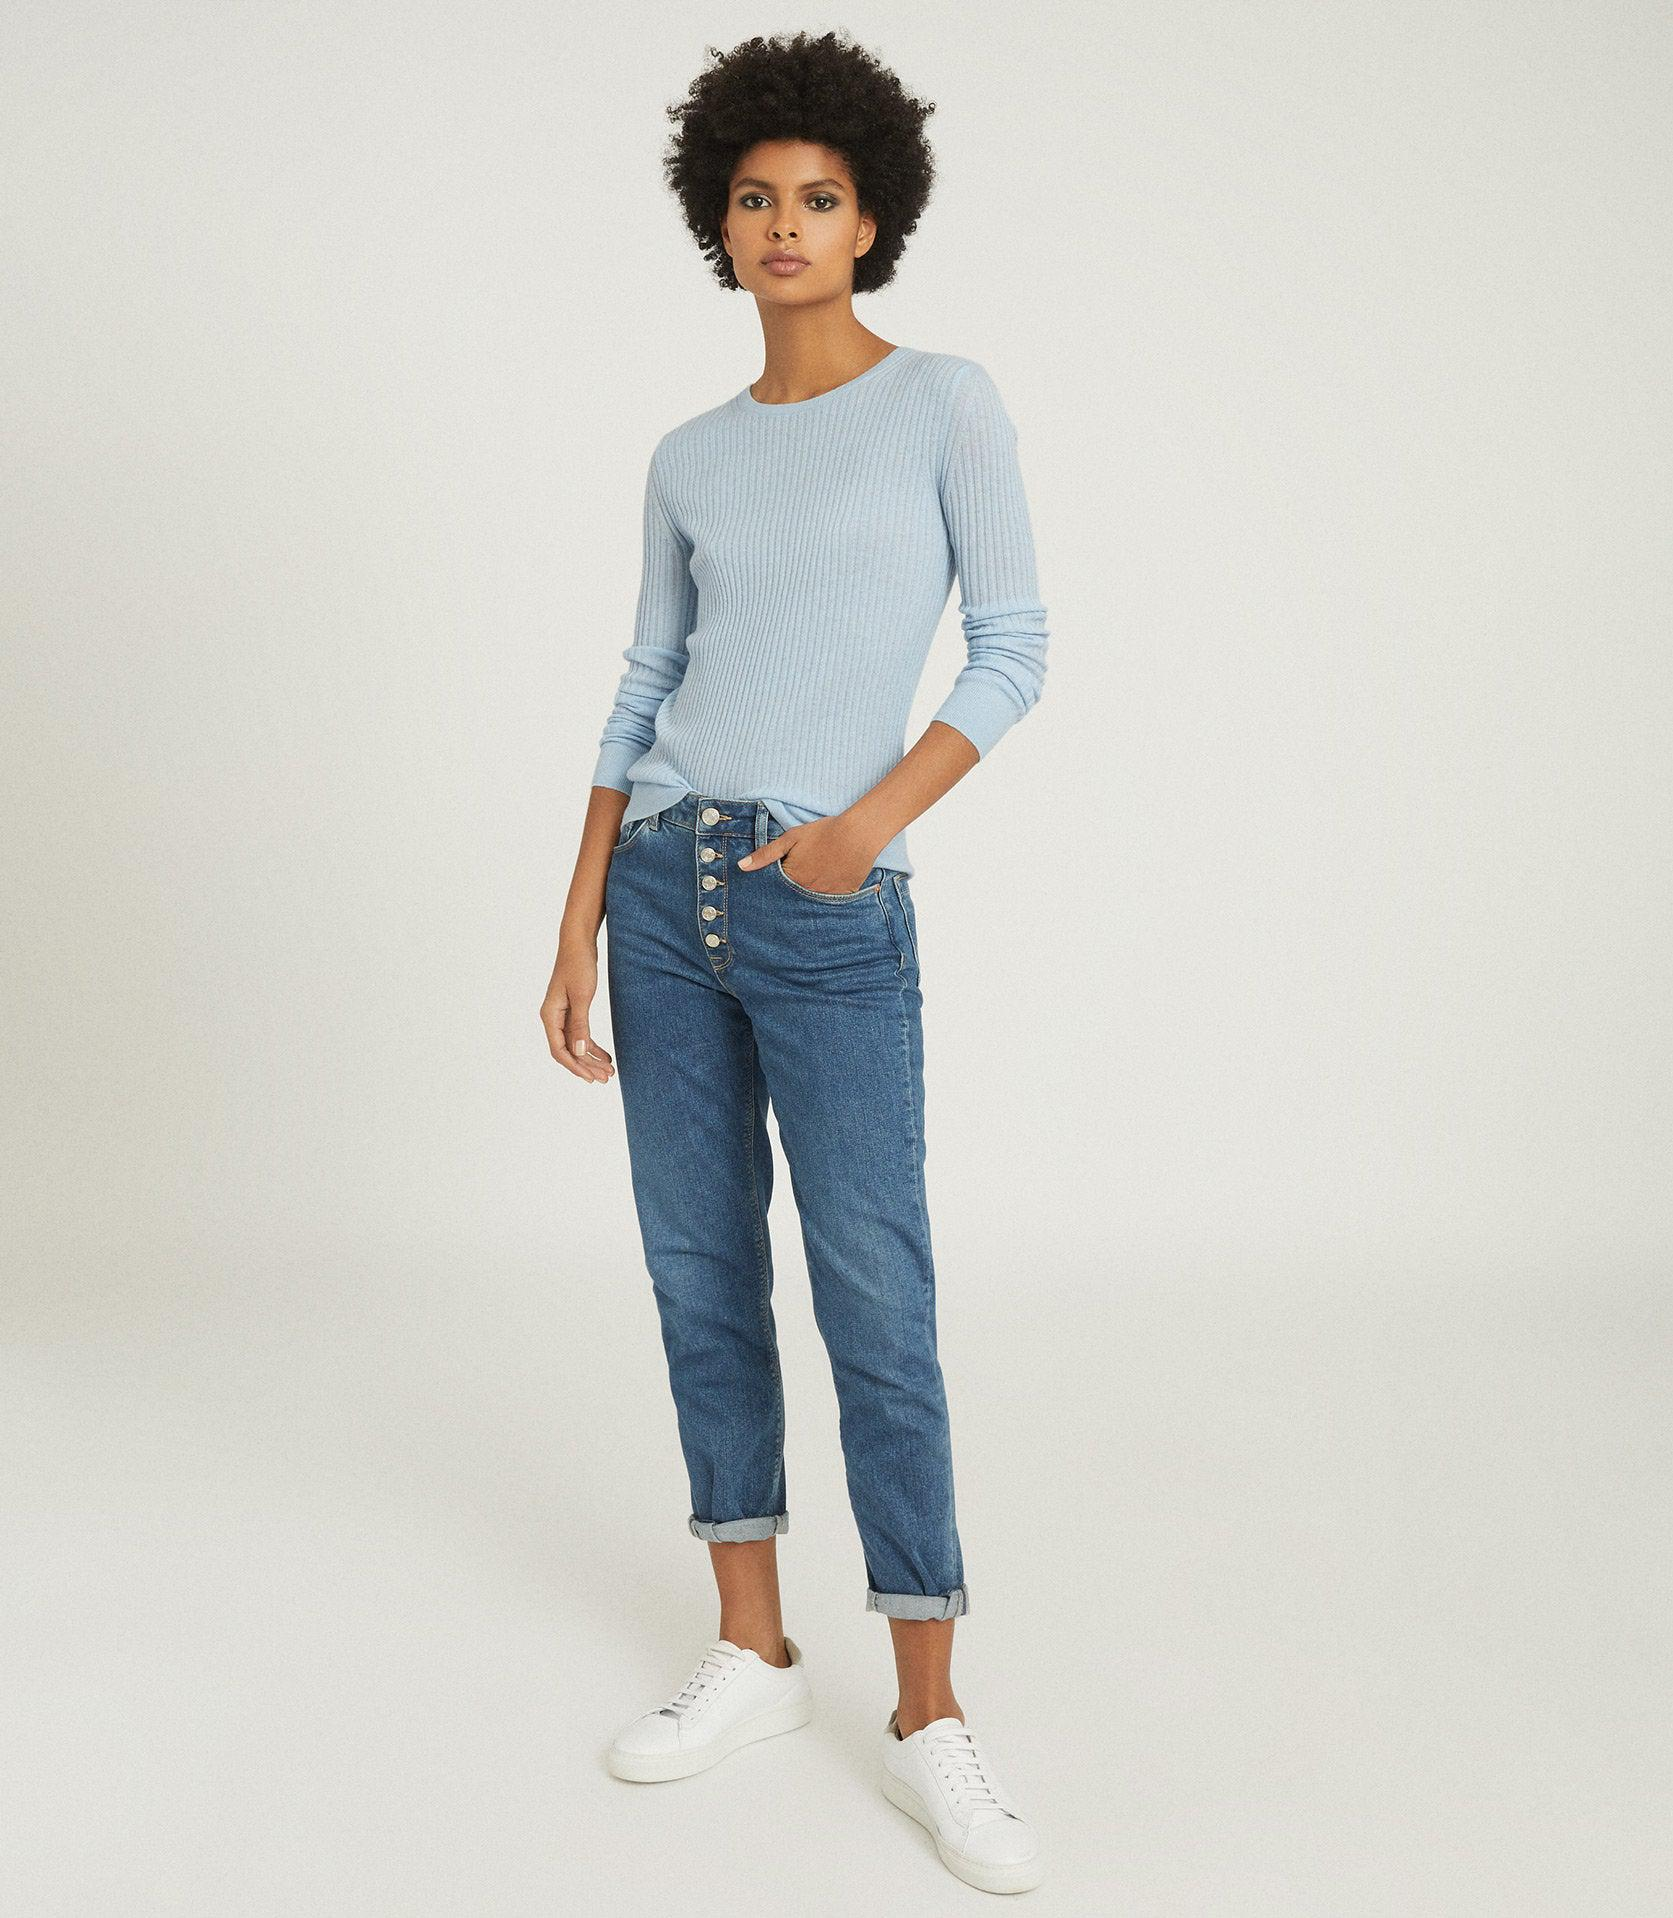 MICHELLE - CREW NECK KNITTED TOP